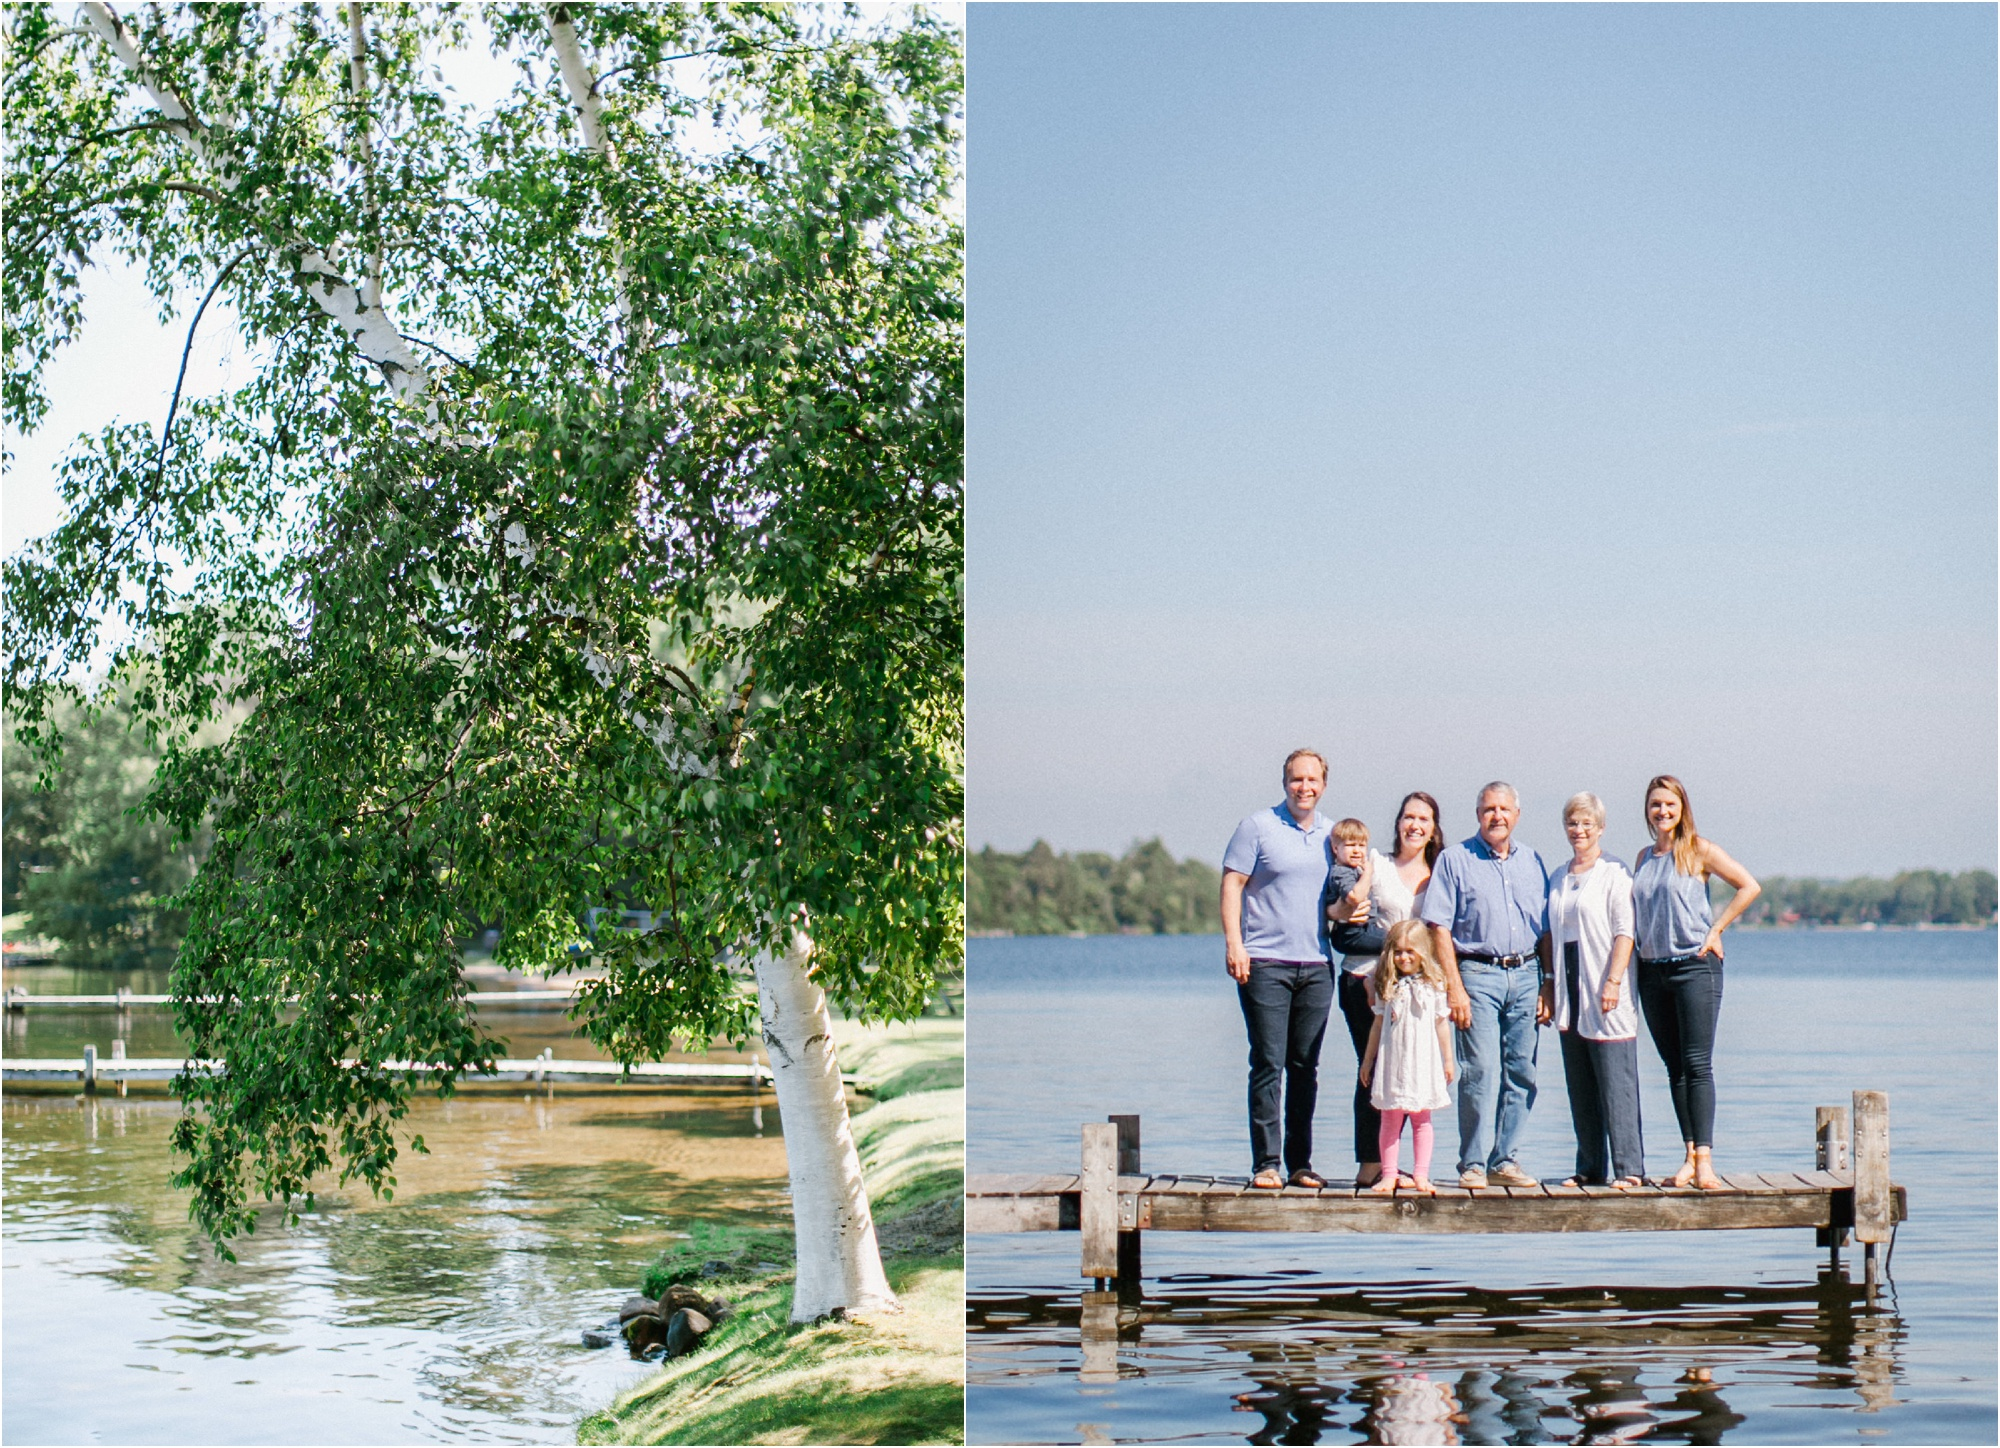 Nisswa Gull Lake Family Photographer Aimee Jobe Photography Lake Minnesota_0111.jpg